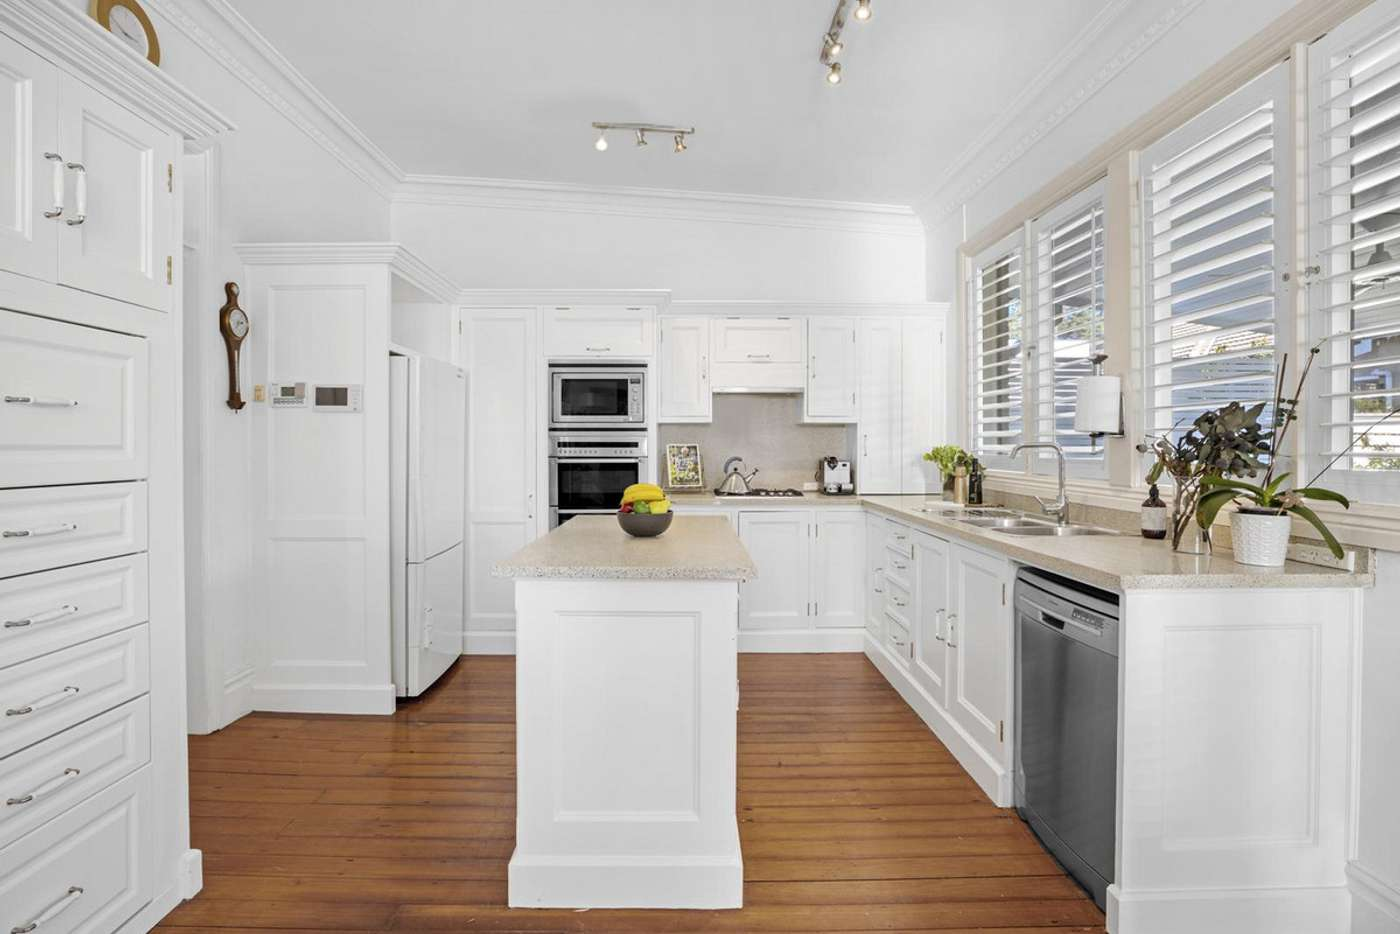 Fifth view of Homely house listing, 24 Thompson Street, Mosman NSW 2088